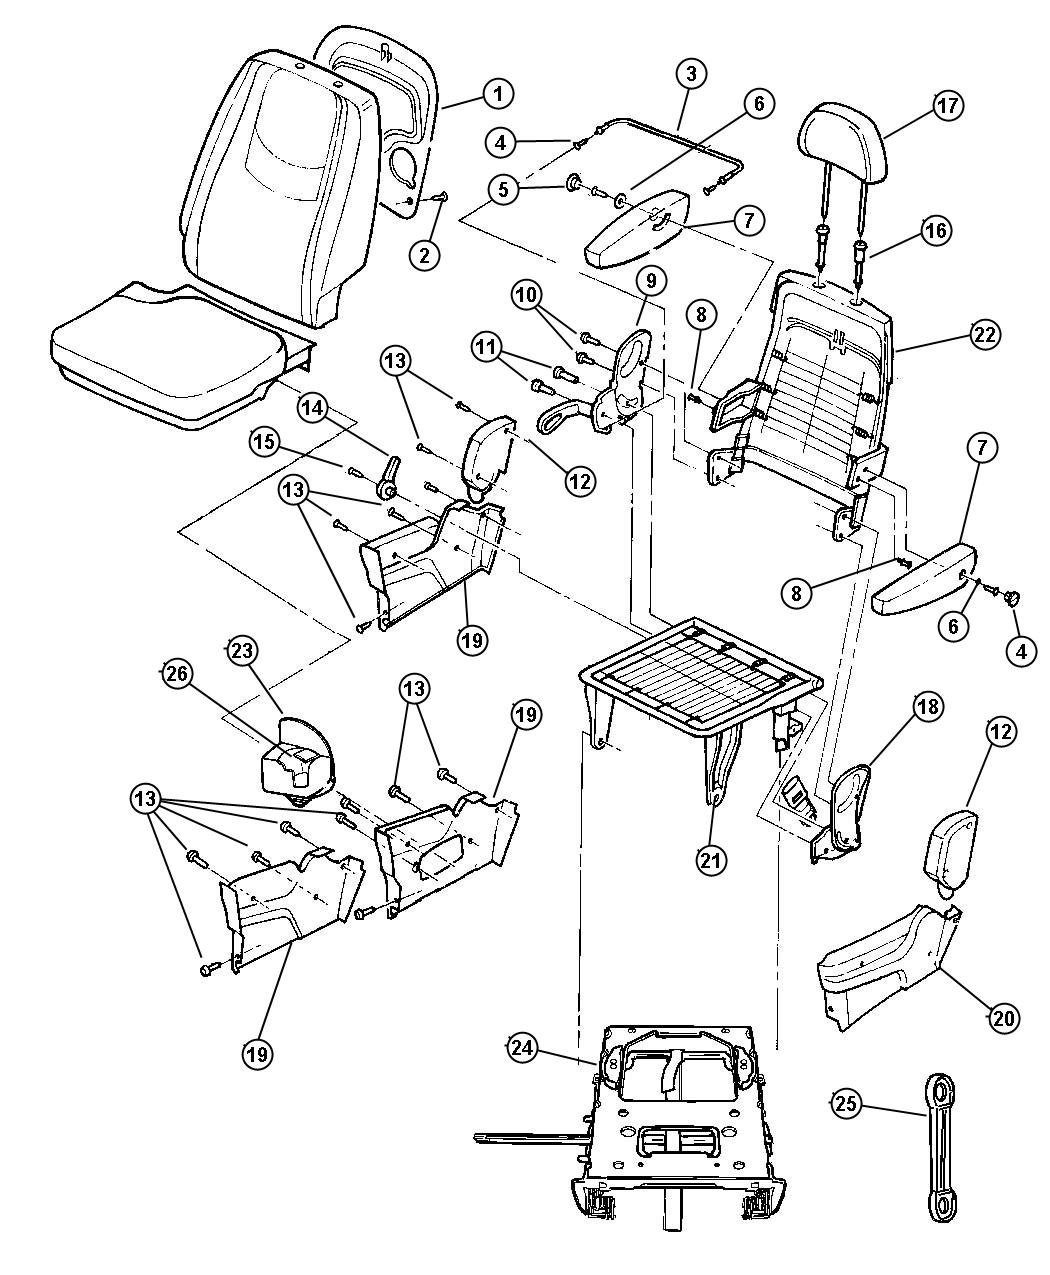 dodge oem interior parts with Showassembly on Dodge Dakota Factory Parts cEyPg7oIibnWTdaMNTty7kuhvOWAWHr1MMyIBeLS 7CeQ also Piston Slap Parts Vs Production Fallacy besides F1b201d7074b37c0e8f5061891e906cb also 2005 Yamaha Dt125x Wiring Diagram besides ShowAssembly.